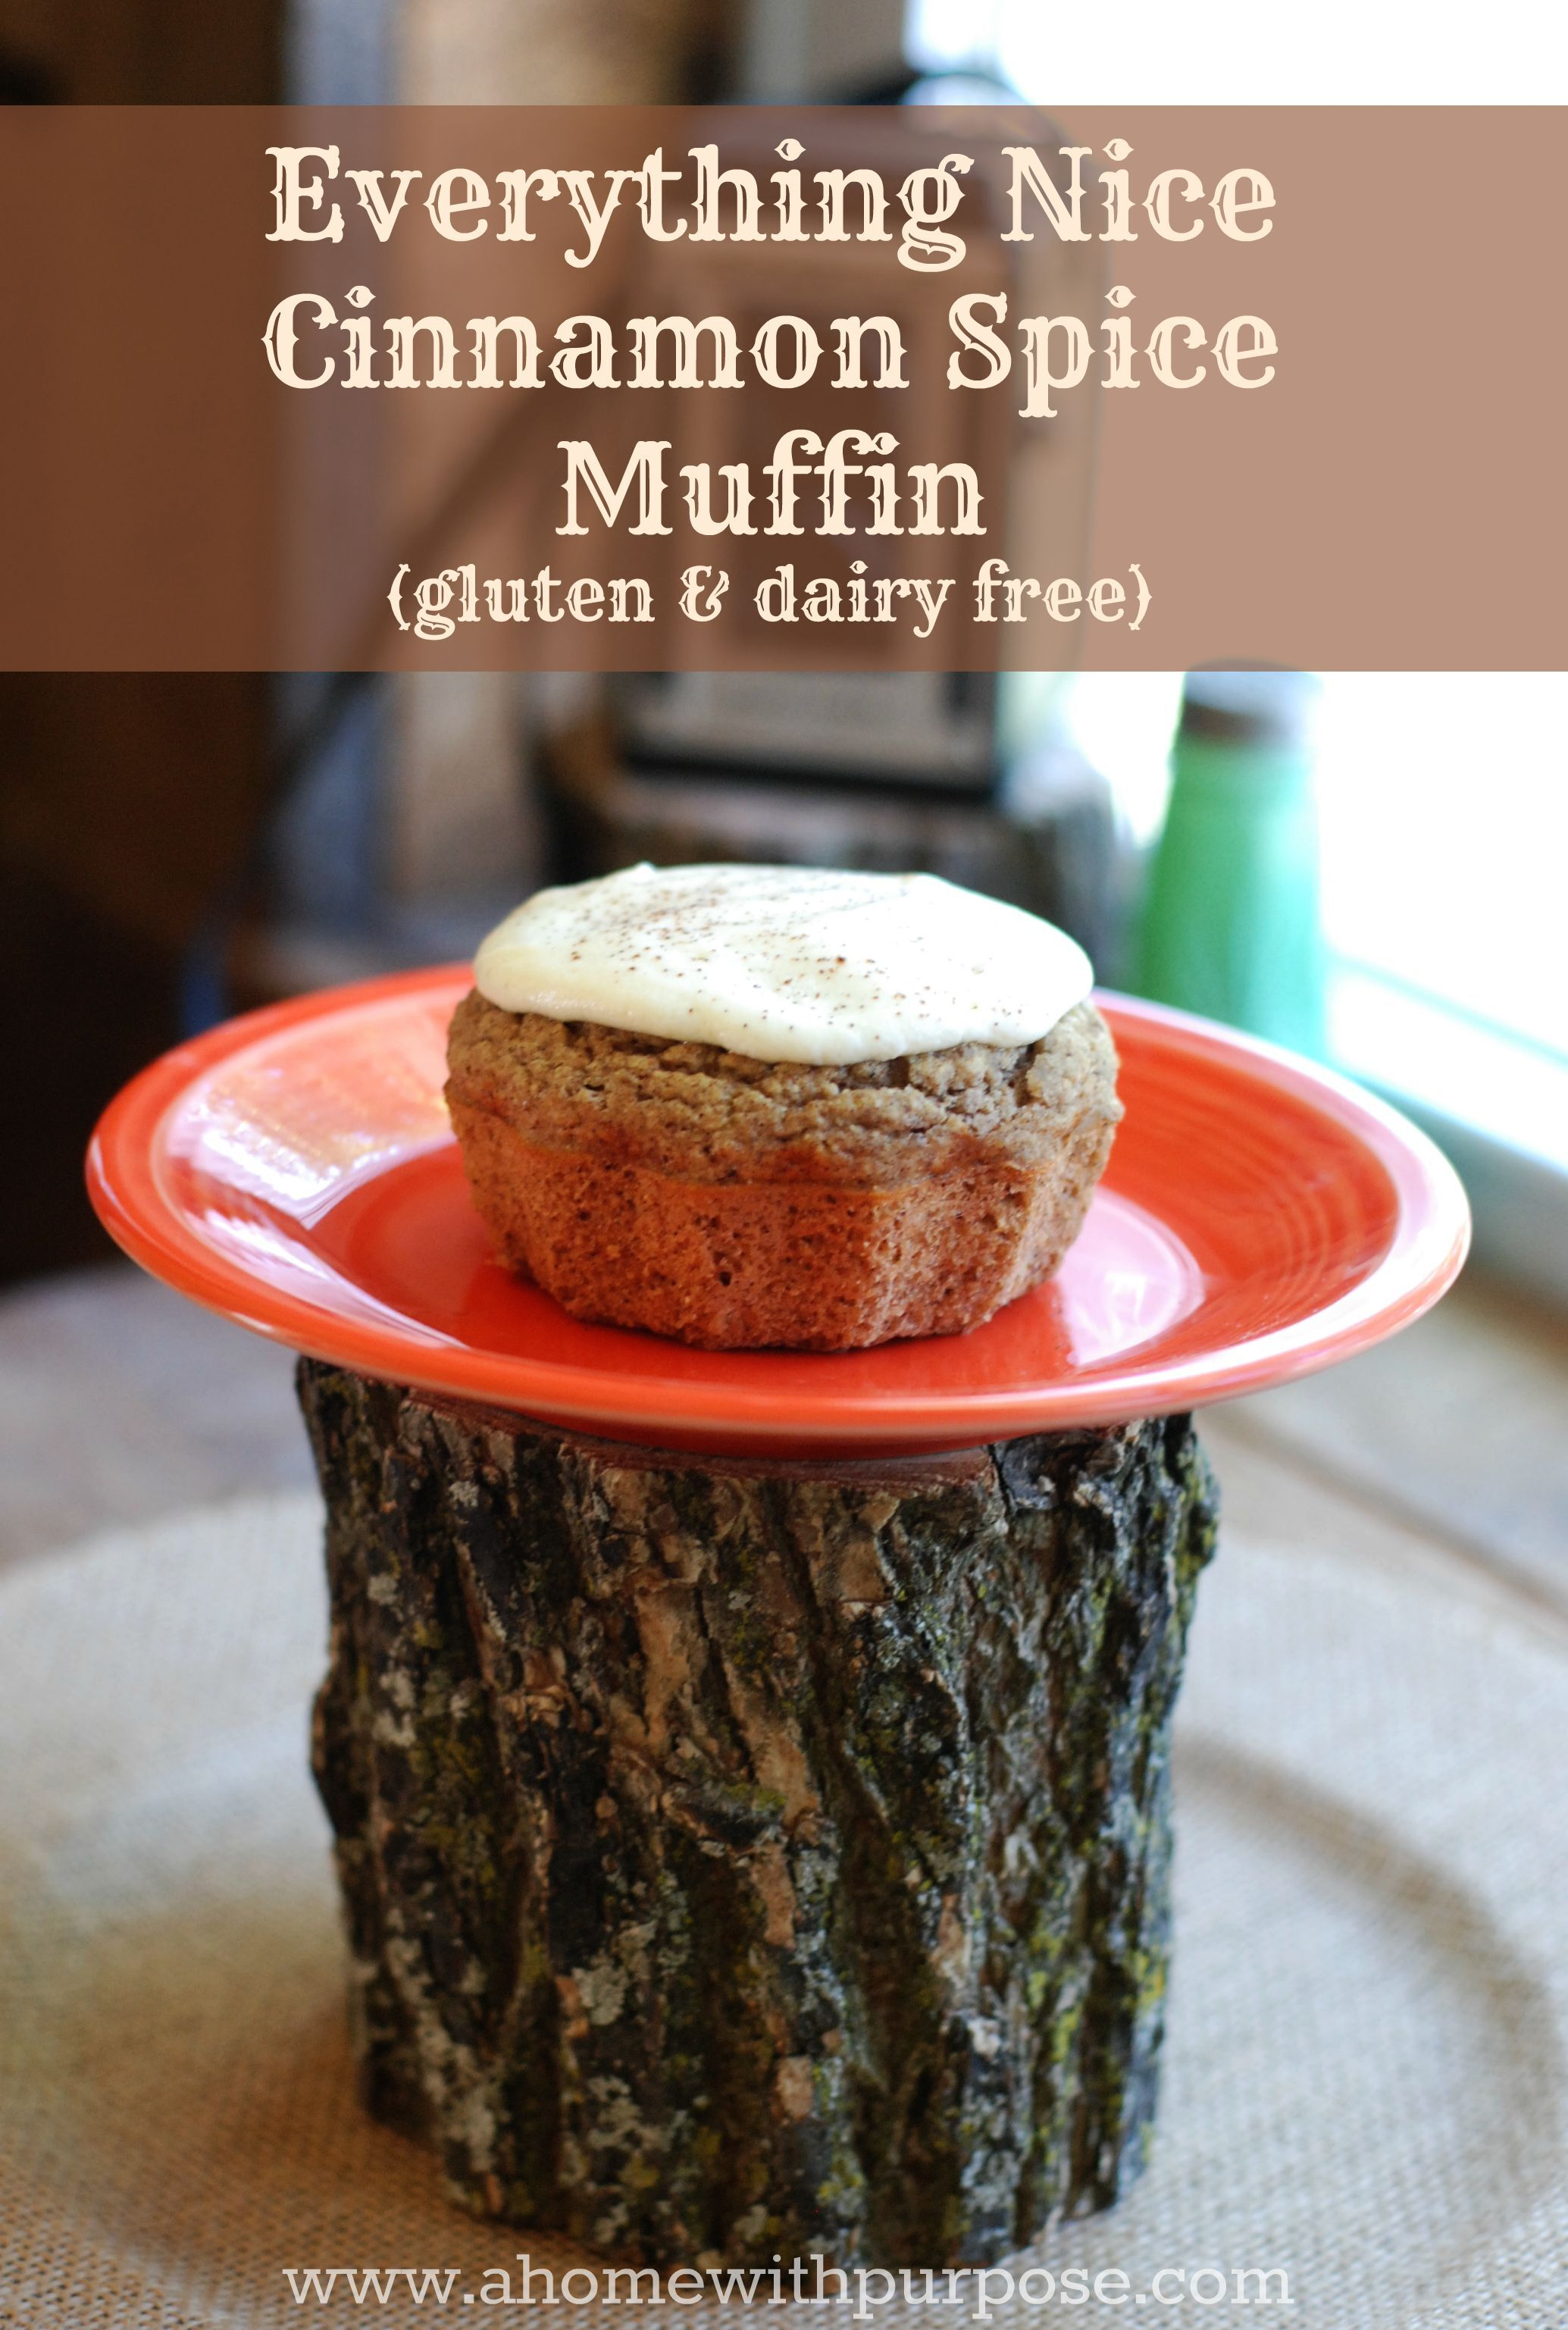 Everything Nice Cinnamon Spice Muffin (gluten, dairy and sugar free)